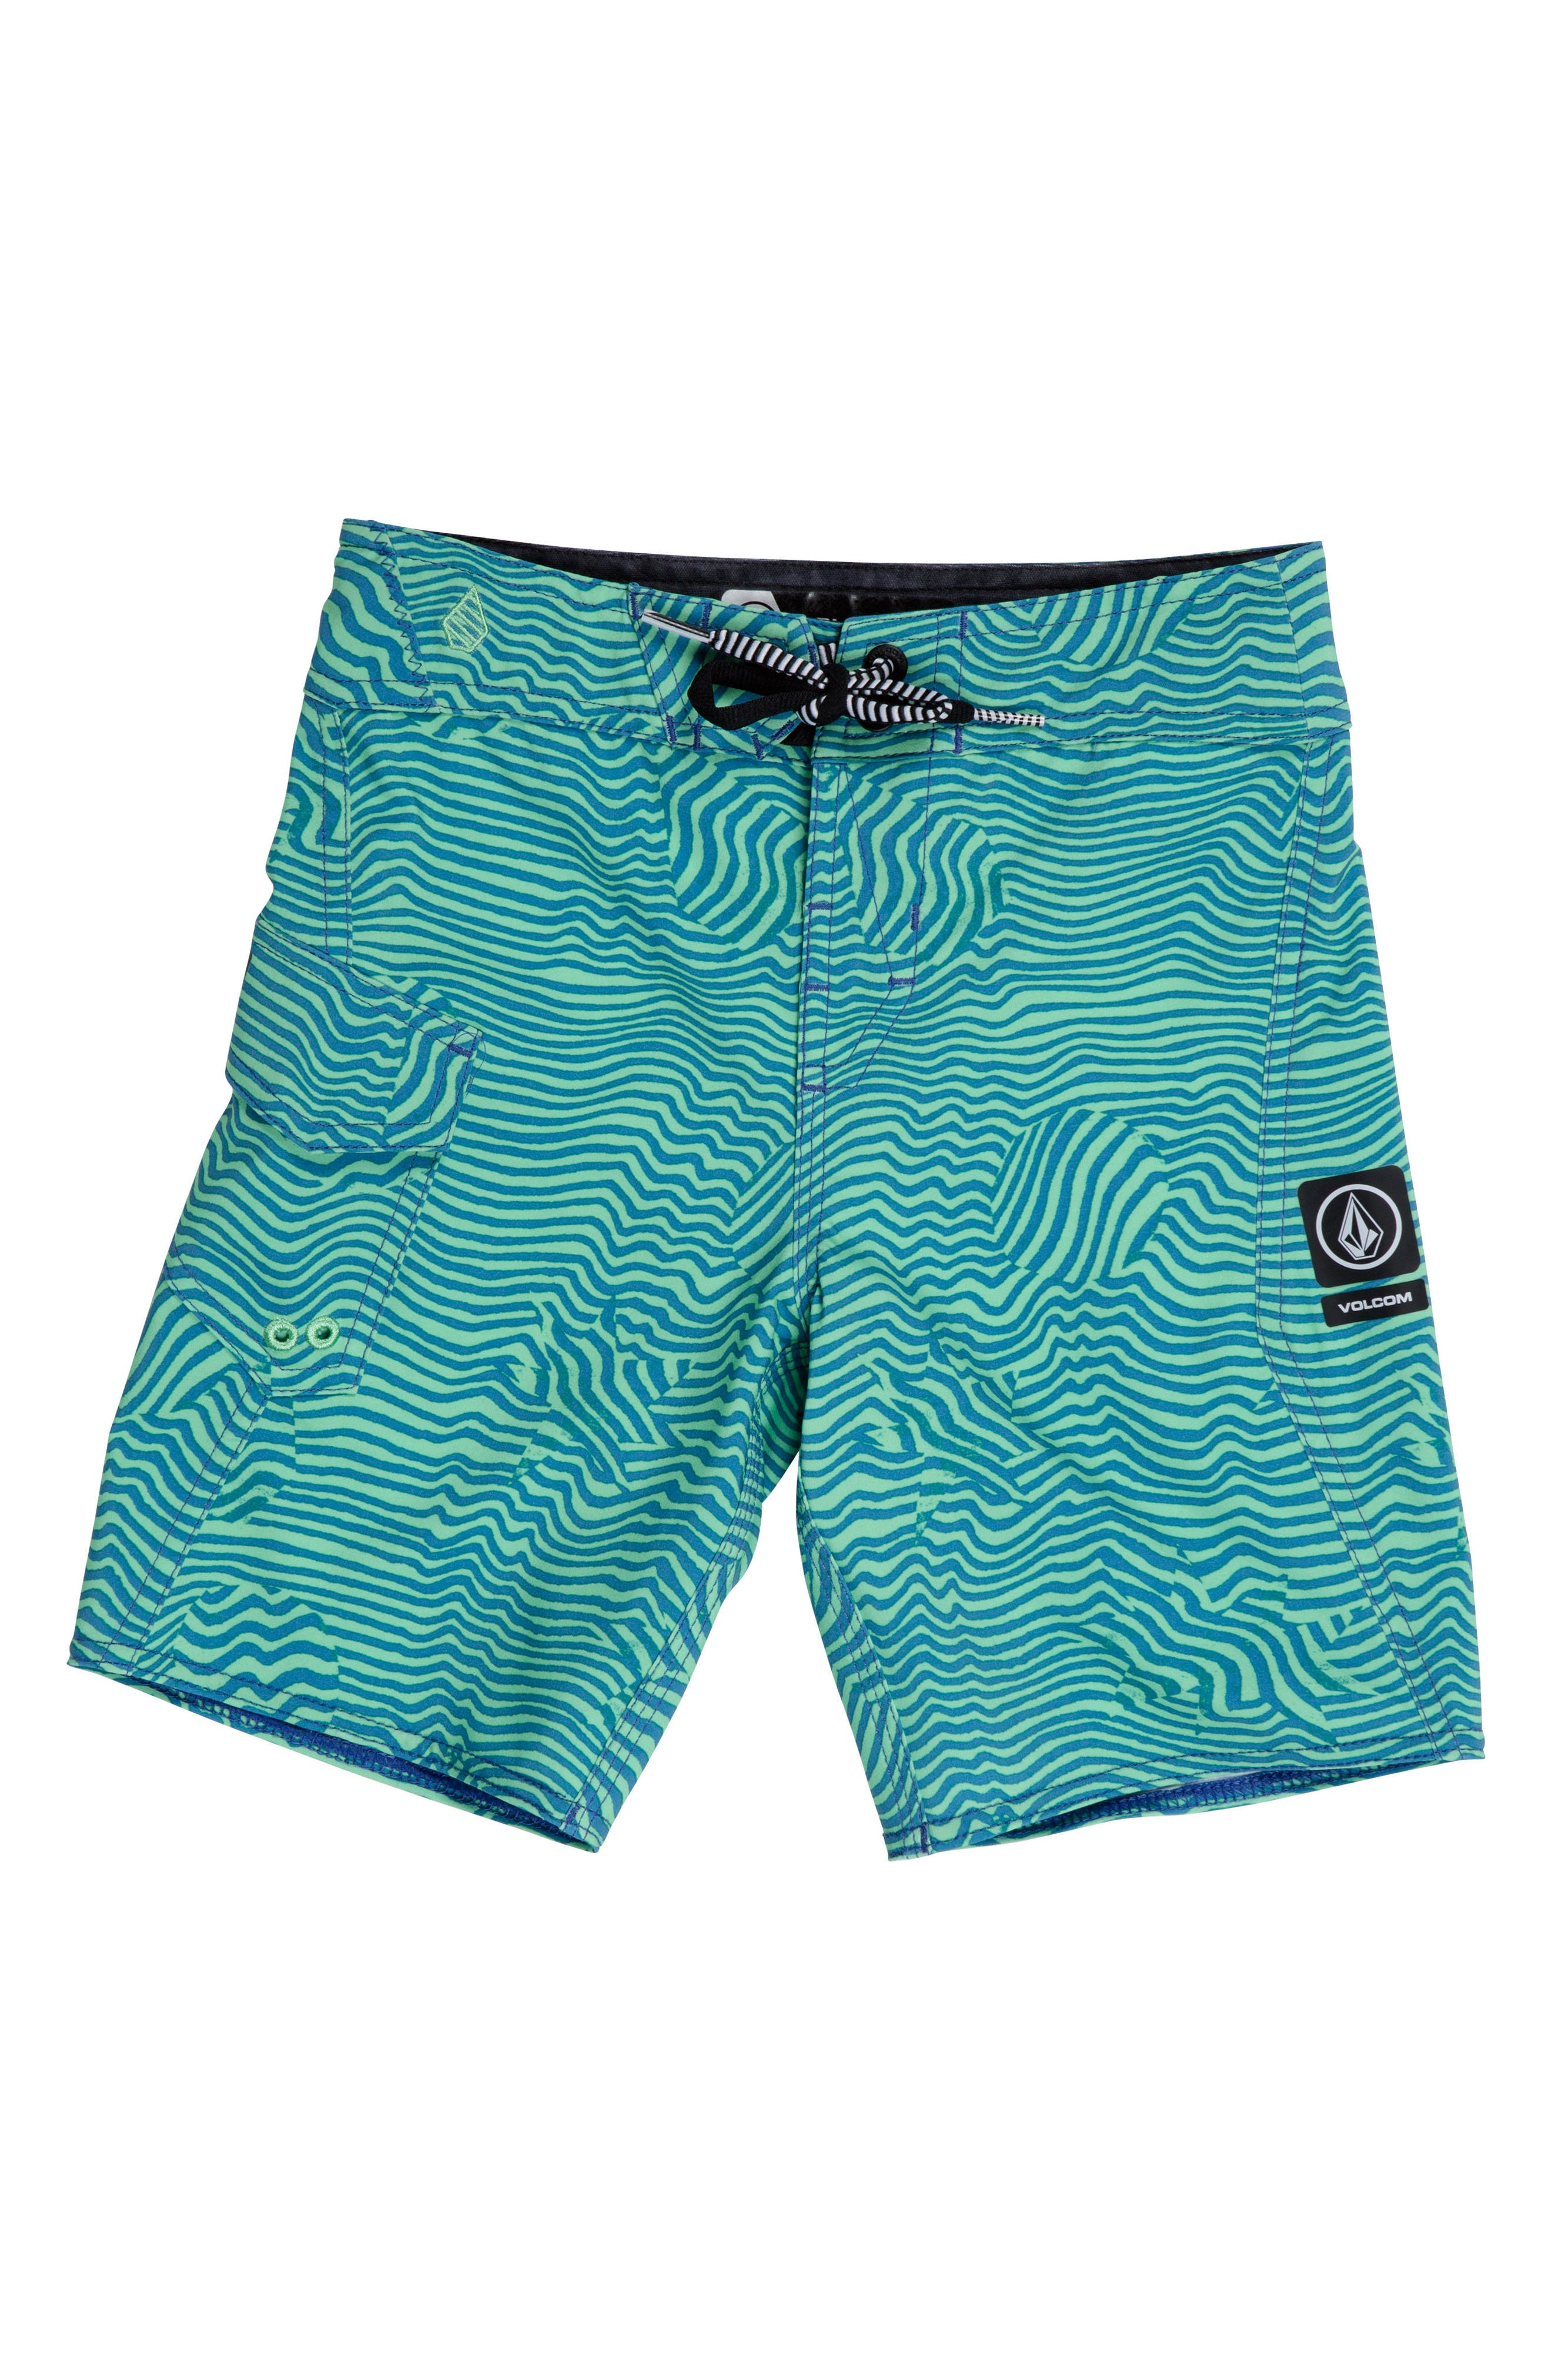 Magnetic Stone Board Shorts,                         Main,                         color, Poison Green